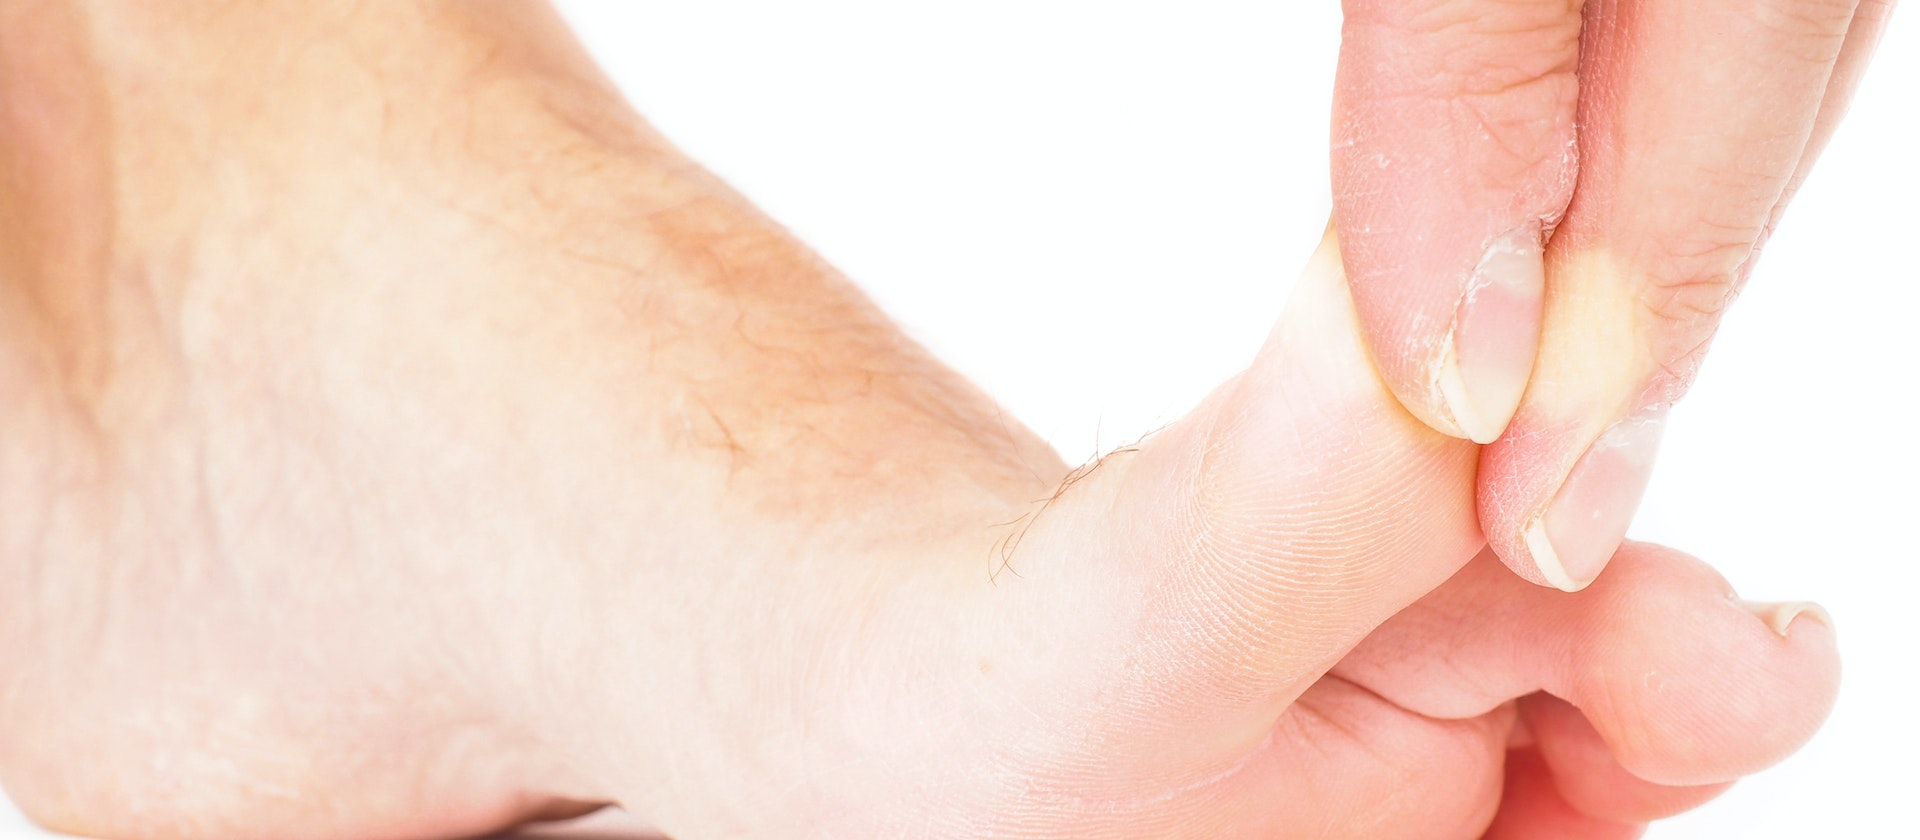 A Person Experiencing Toe Pain Symptoms